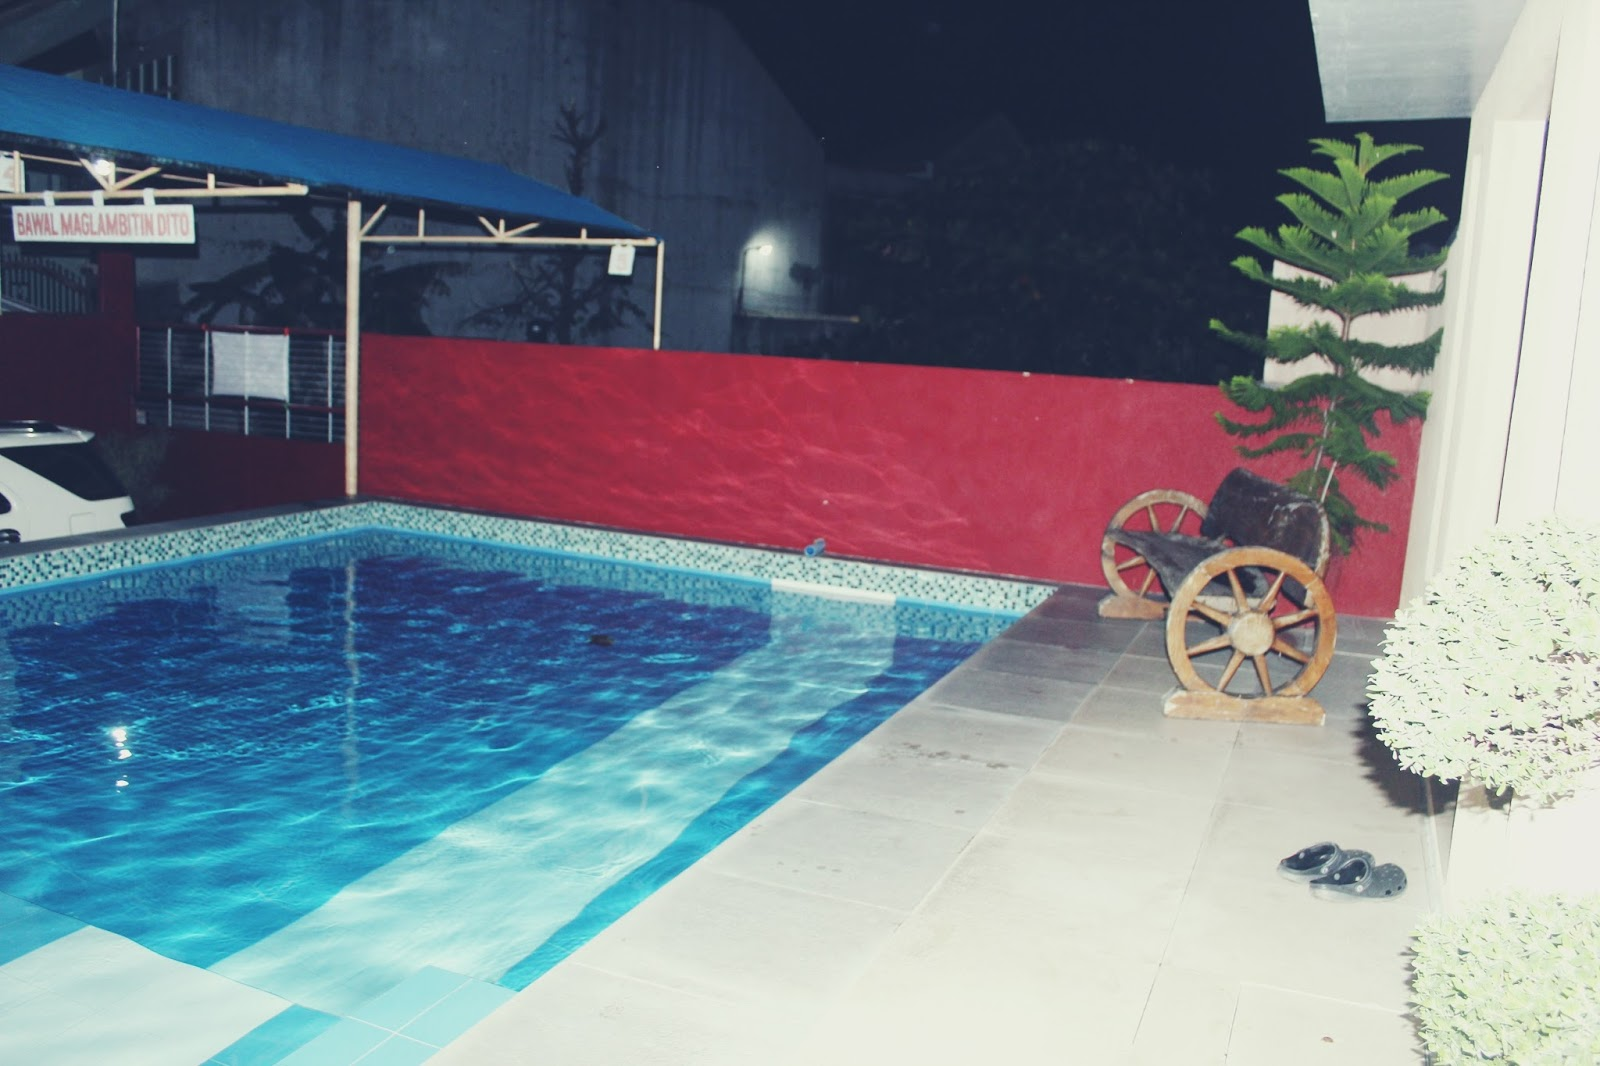 Review: Martin\'s Ville Private Pool - Los Banos, Laguna | Swirls and ...